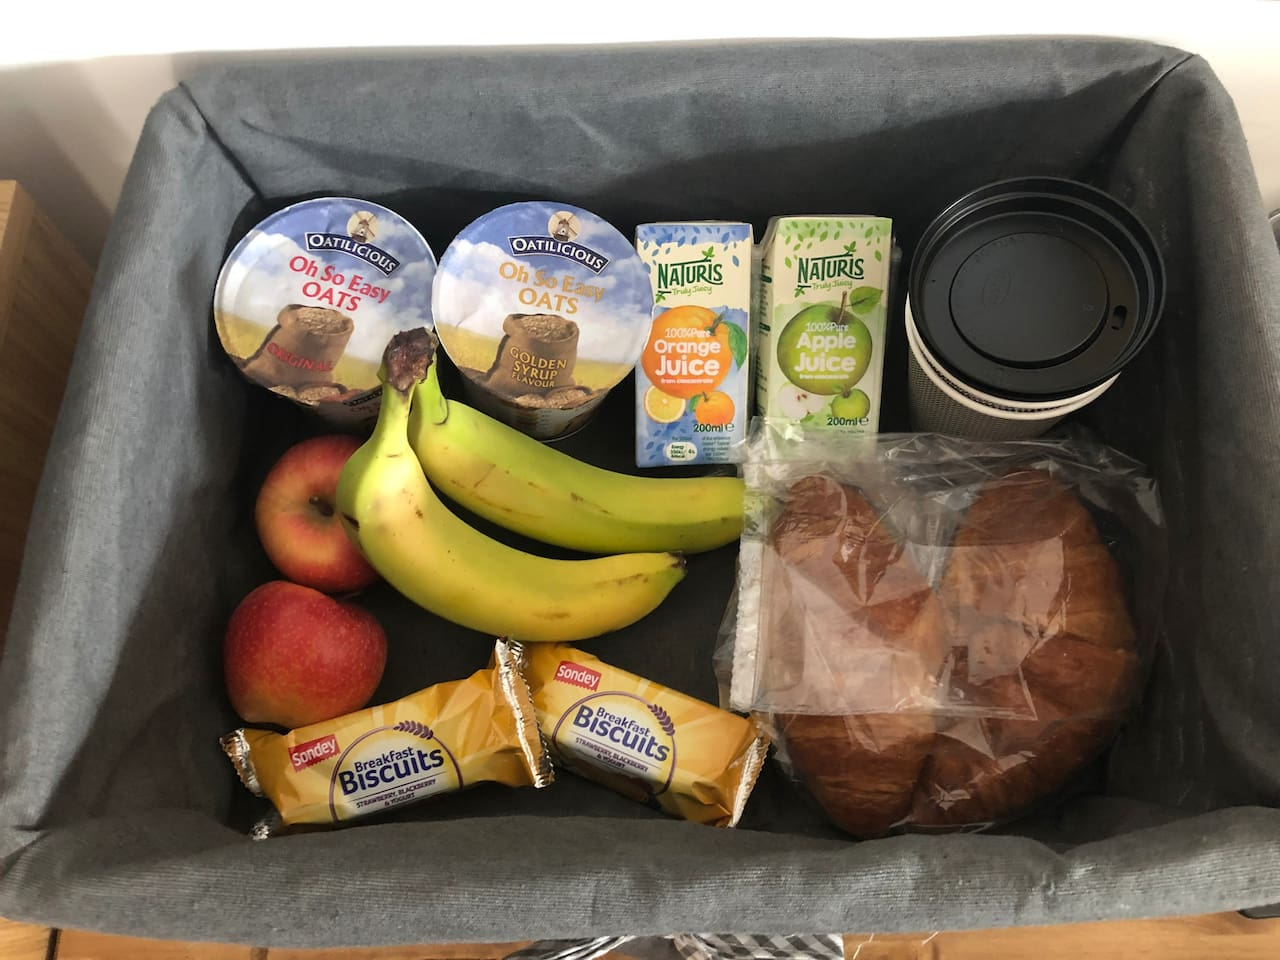 Typical contents of breakfast basket.